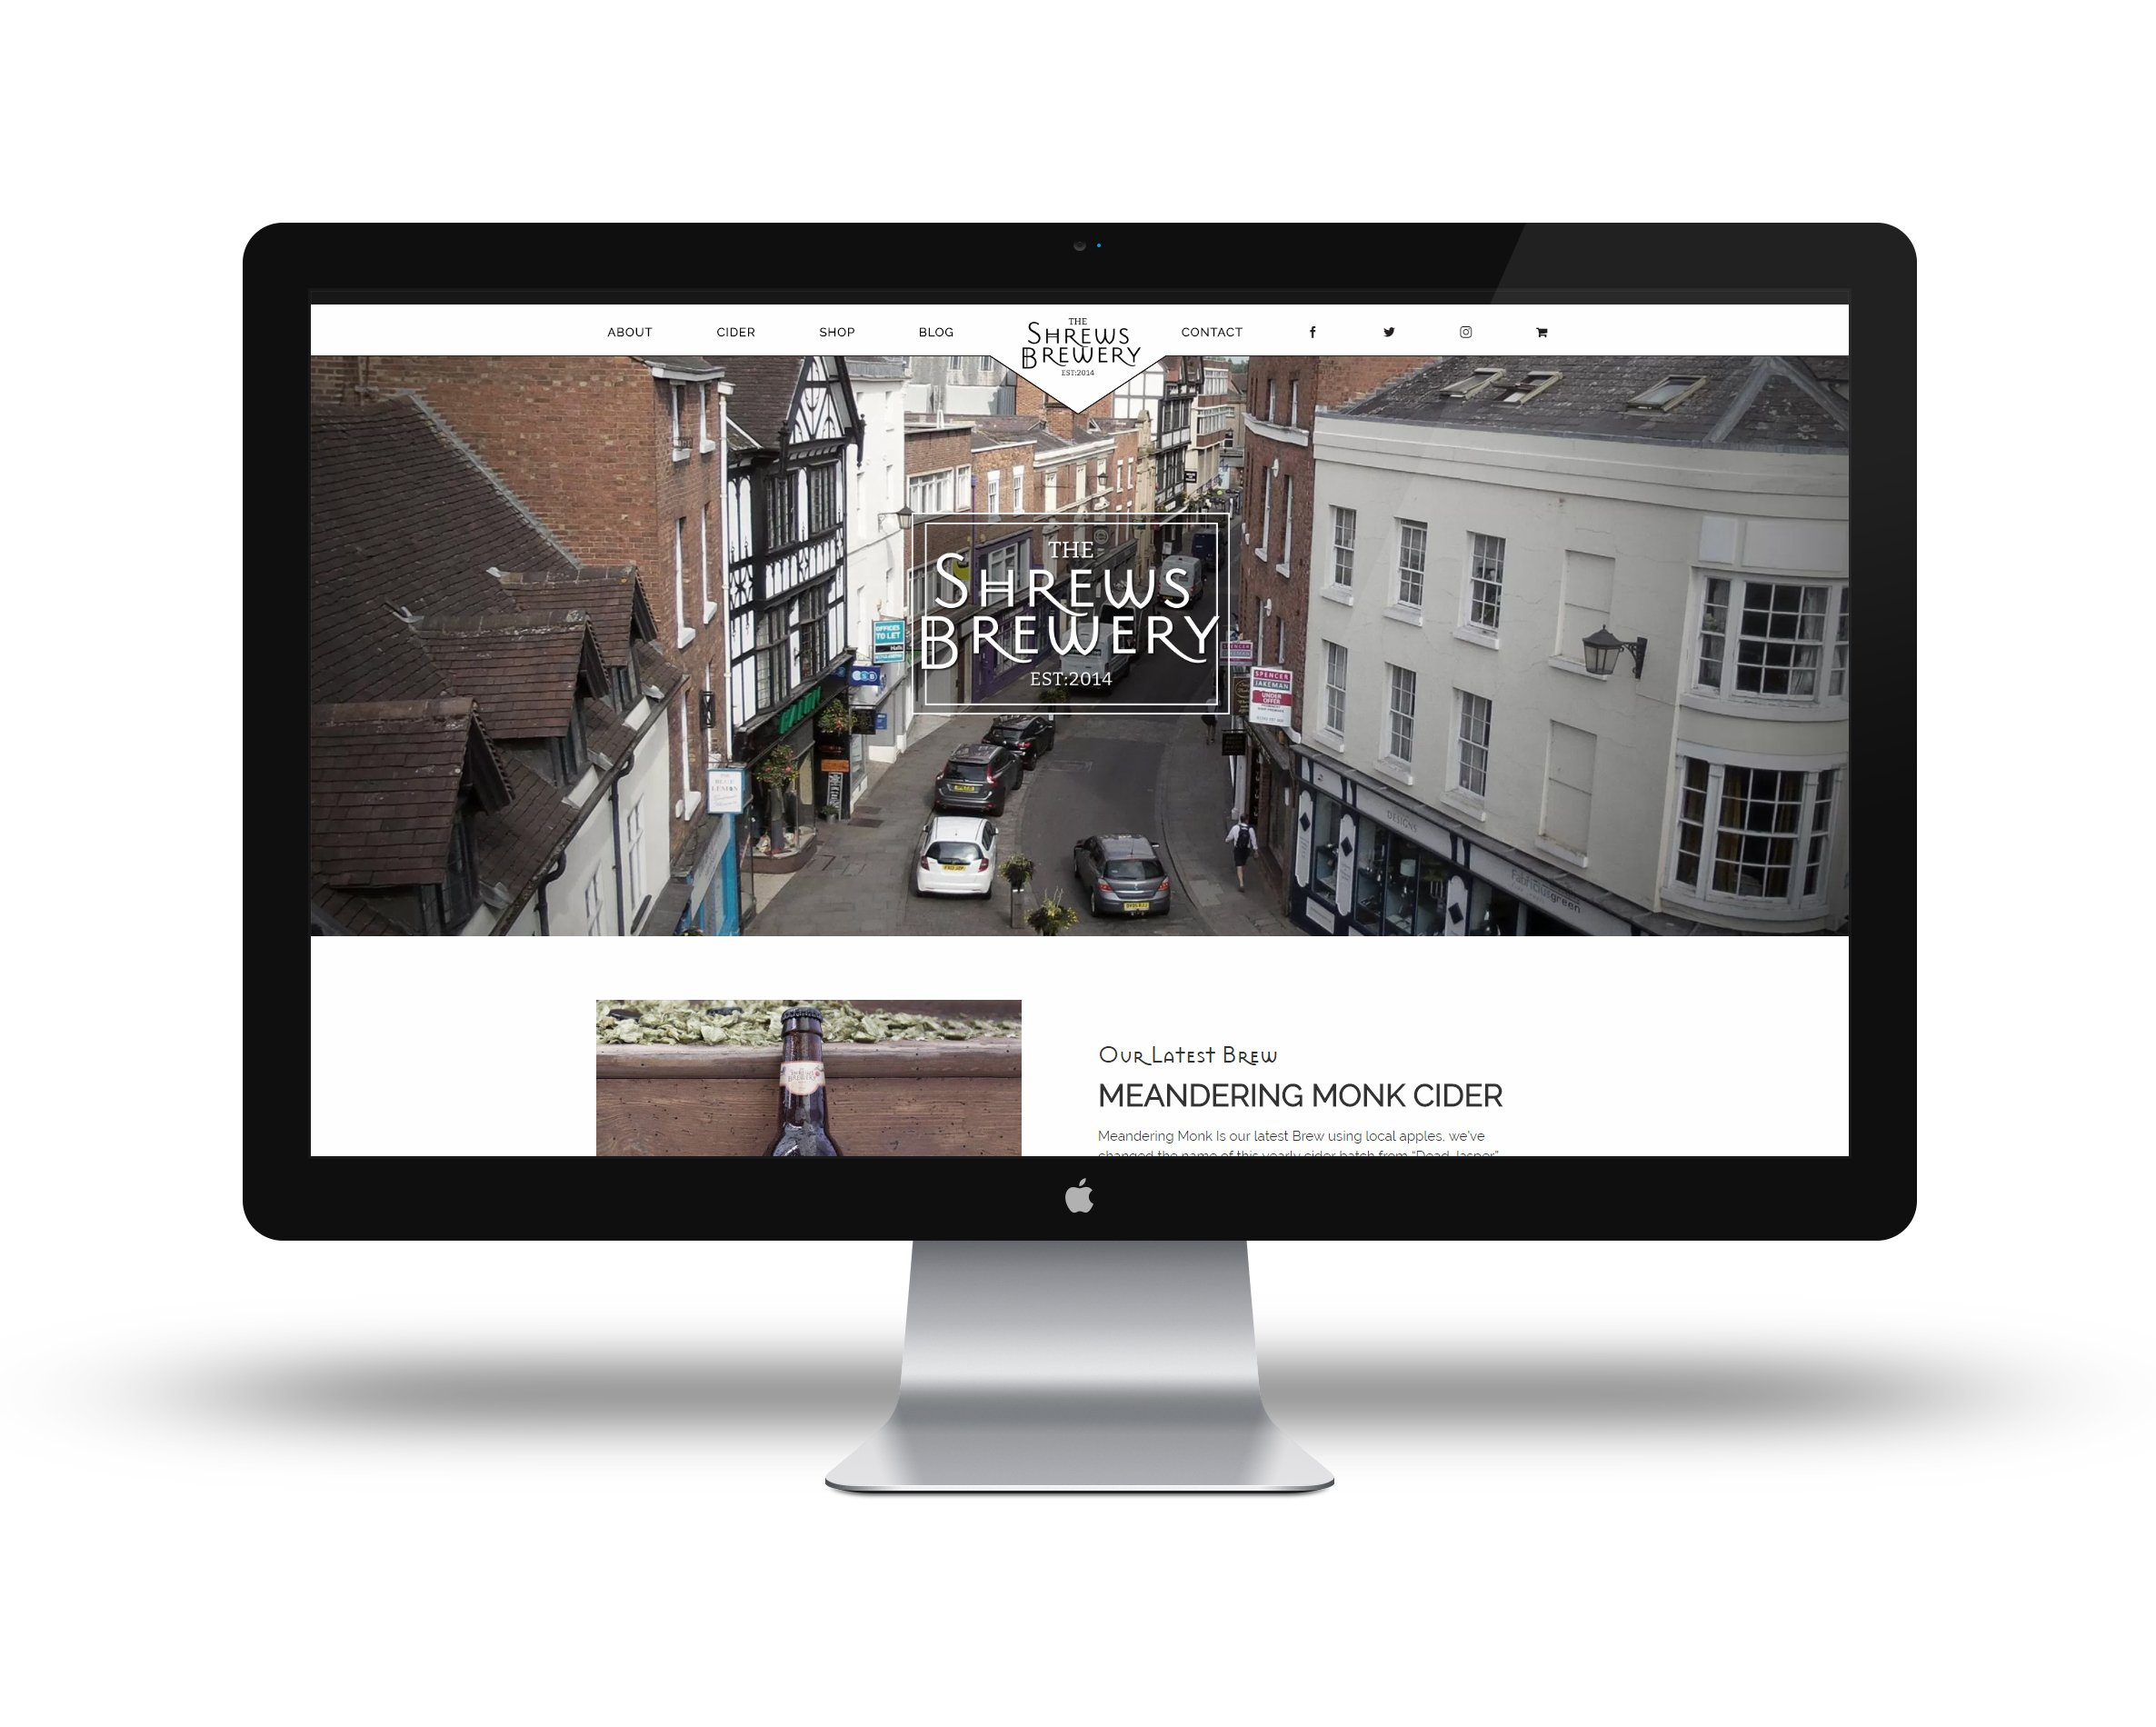 Shrewsbury website / branding - Shrewsbrewery